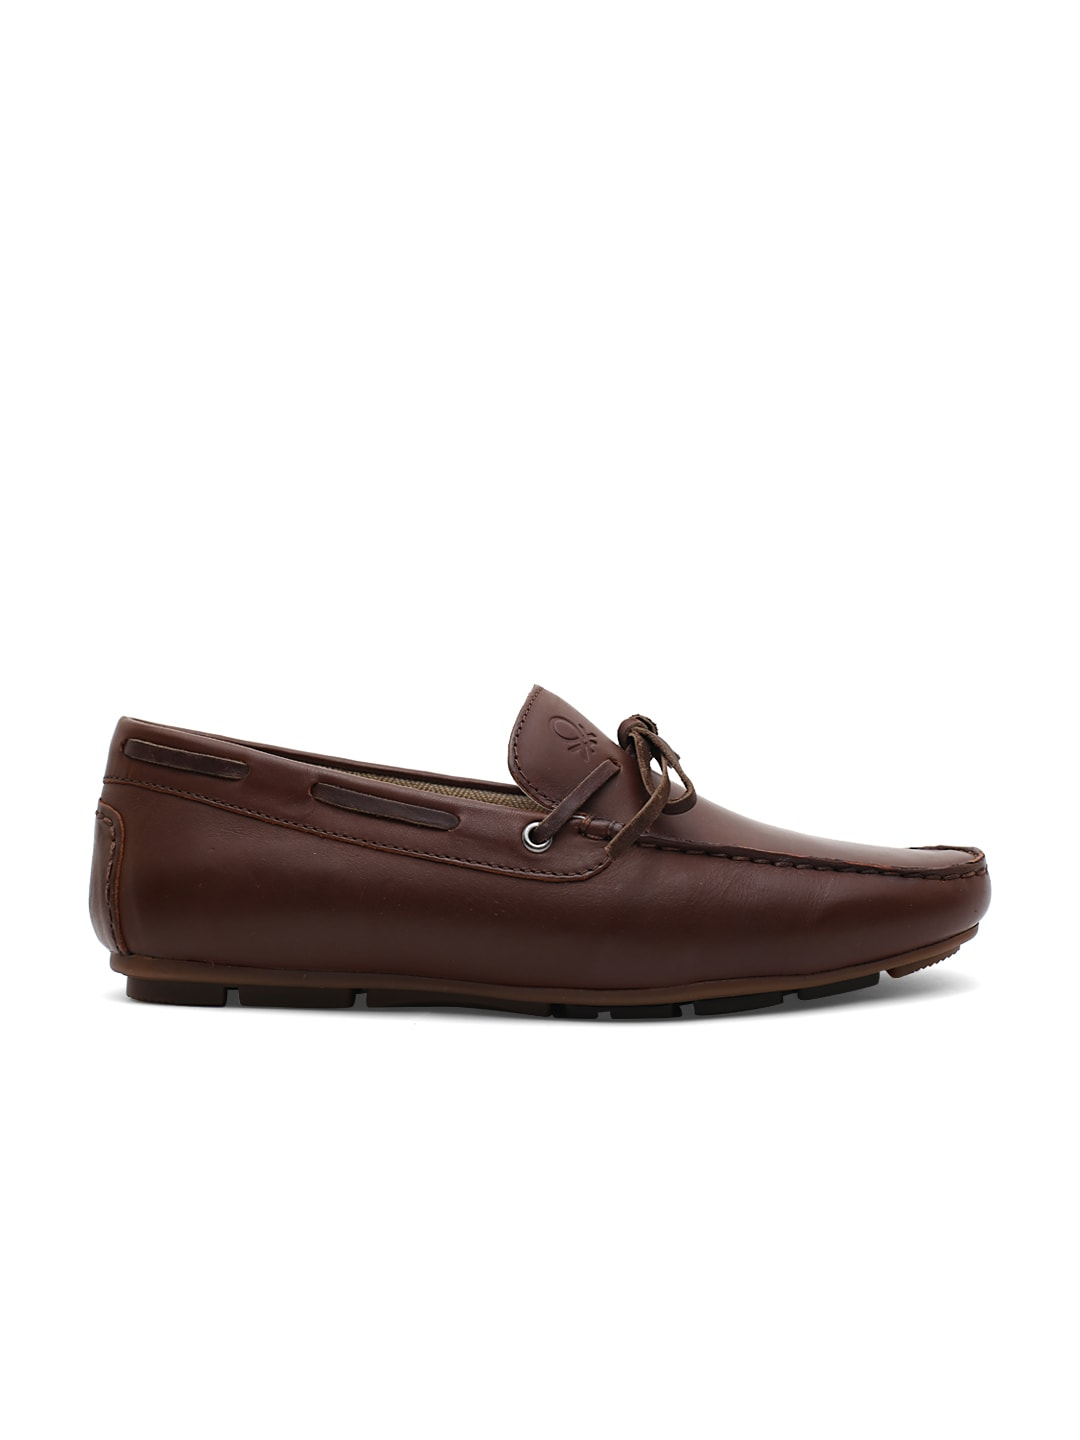 9ca1ffd3da30 Buy Tommy Hilfiger Men Brown Leather Loafers - Casual Shoes for Men ...